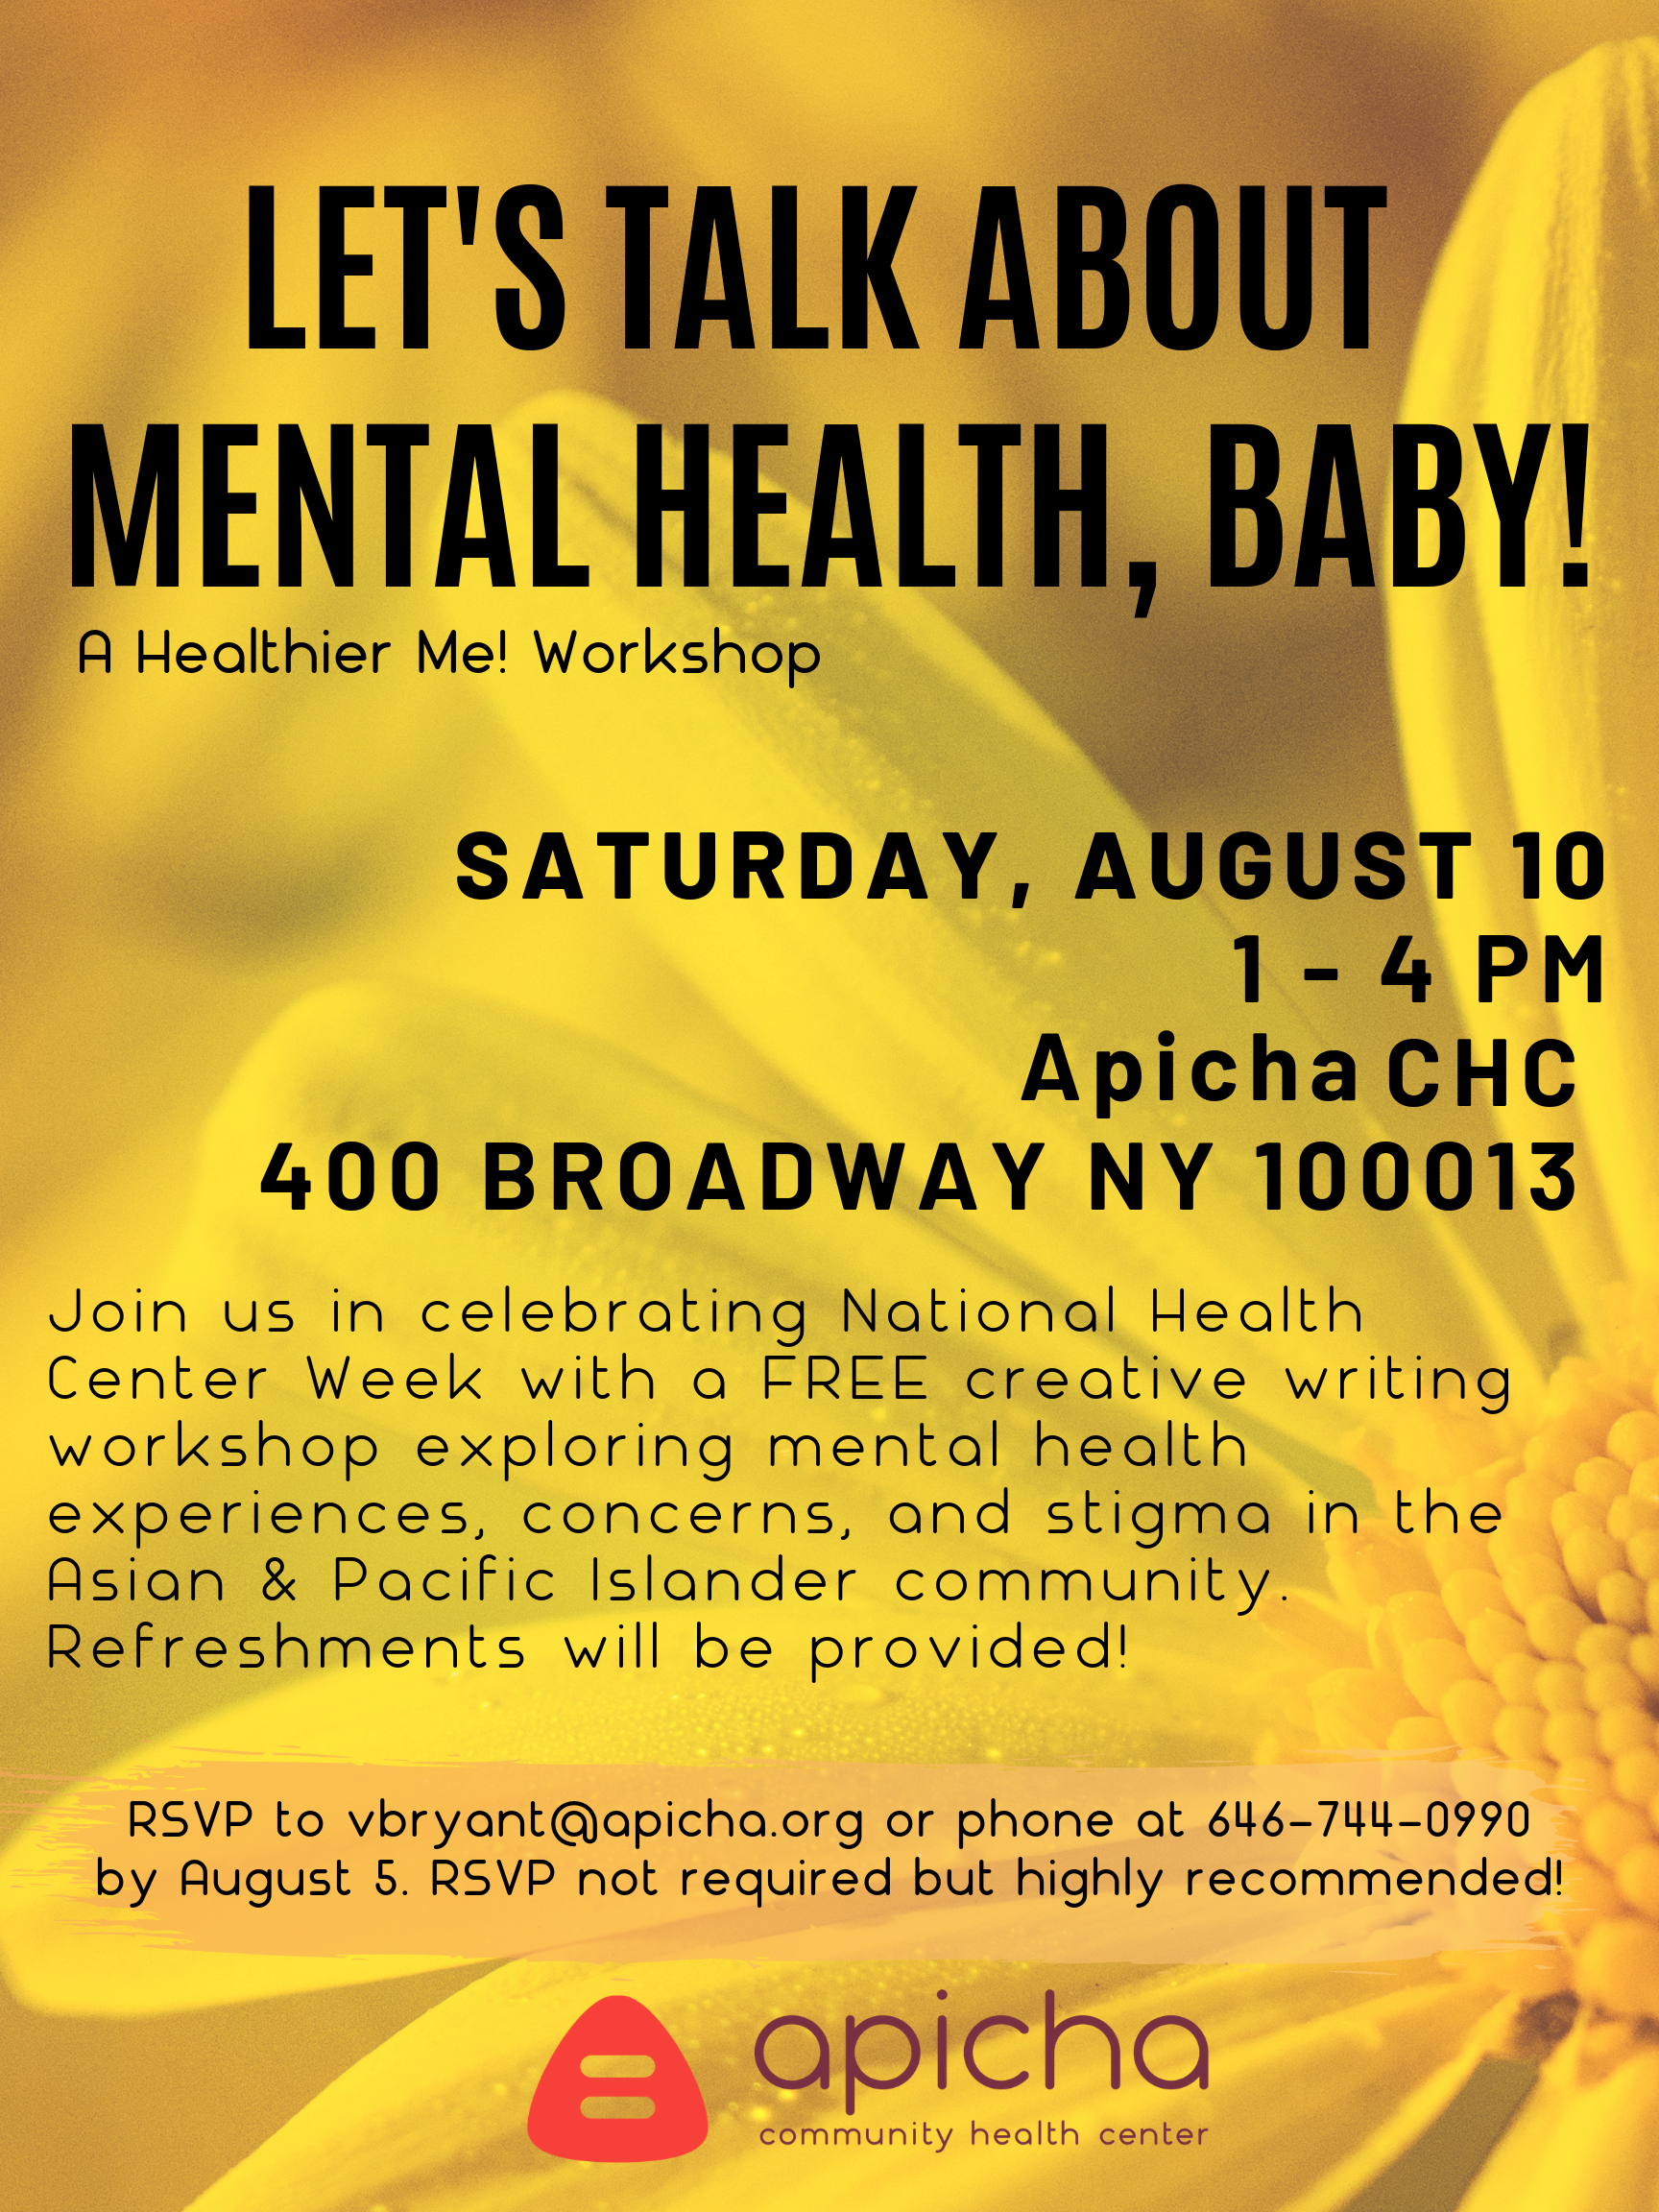 LETs TALK ABOUT MENTAL HEALTH, BABY!